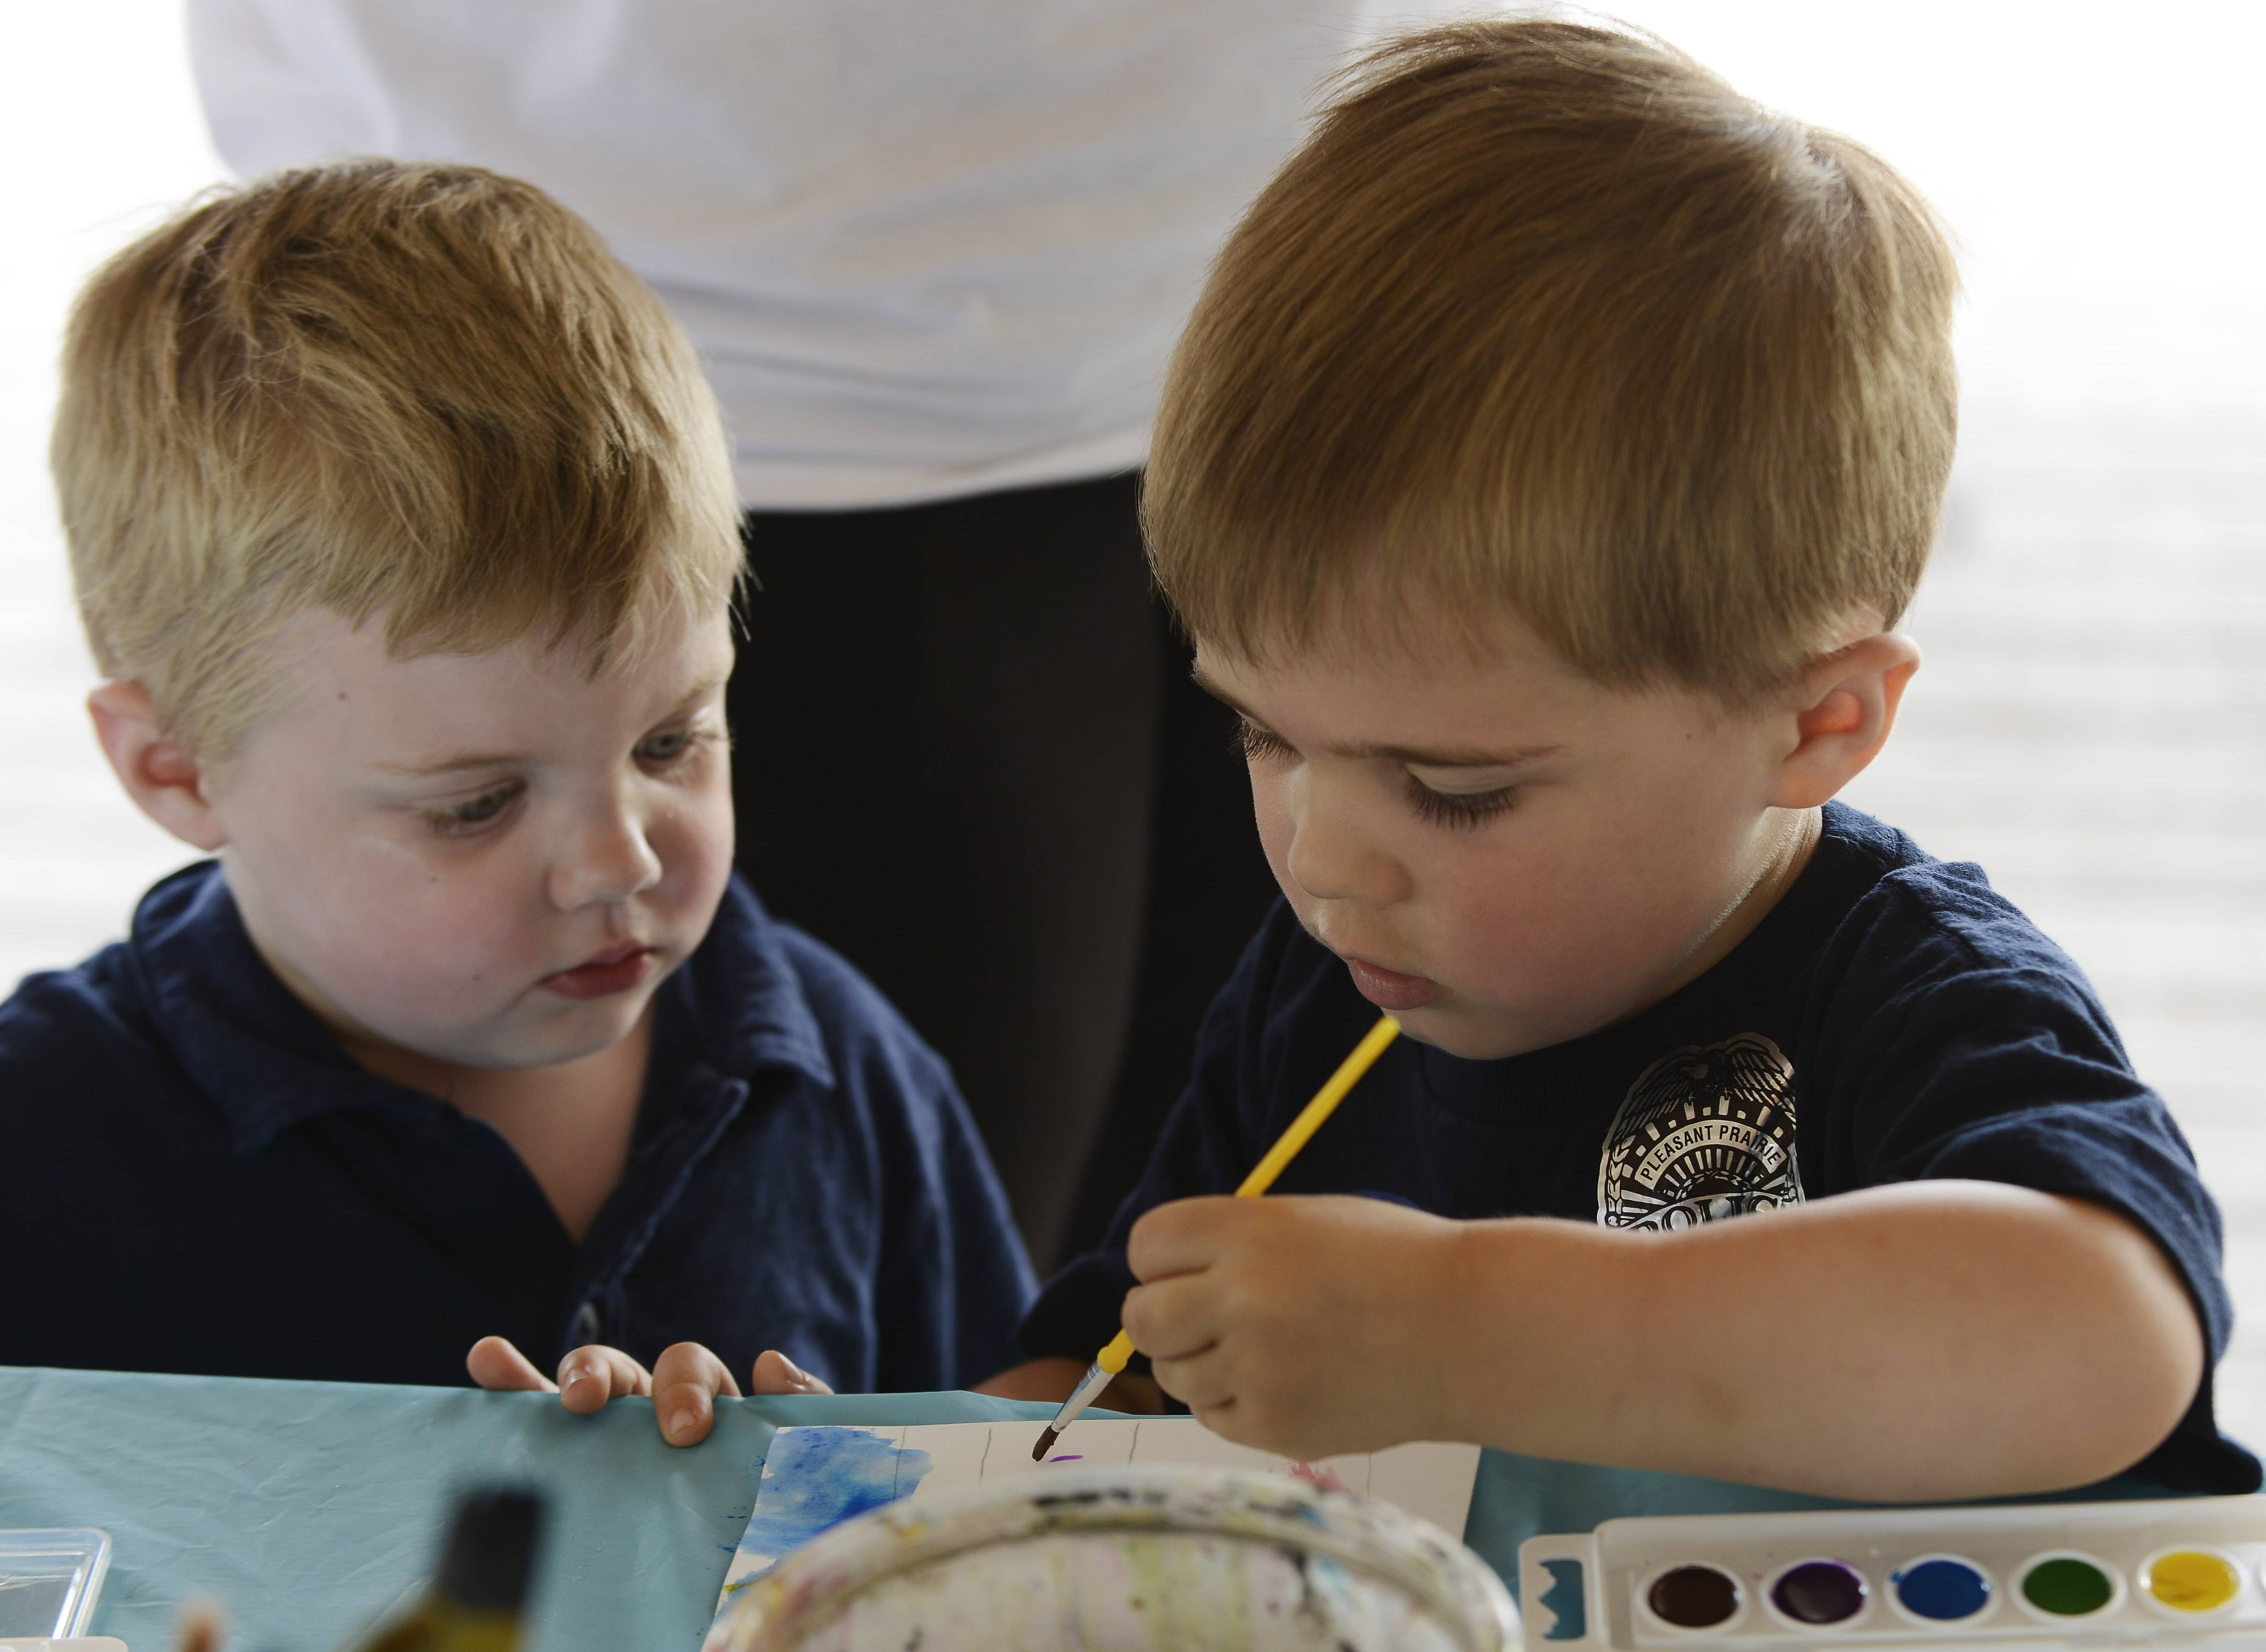 Blake De Tota, 3, left, and Austin Harris, 3, of Pleasant Prairie, Wis., paint with watercolors Saturday during the third day of Mundelein Community Days.